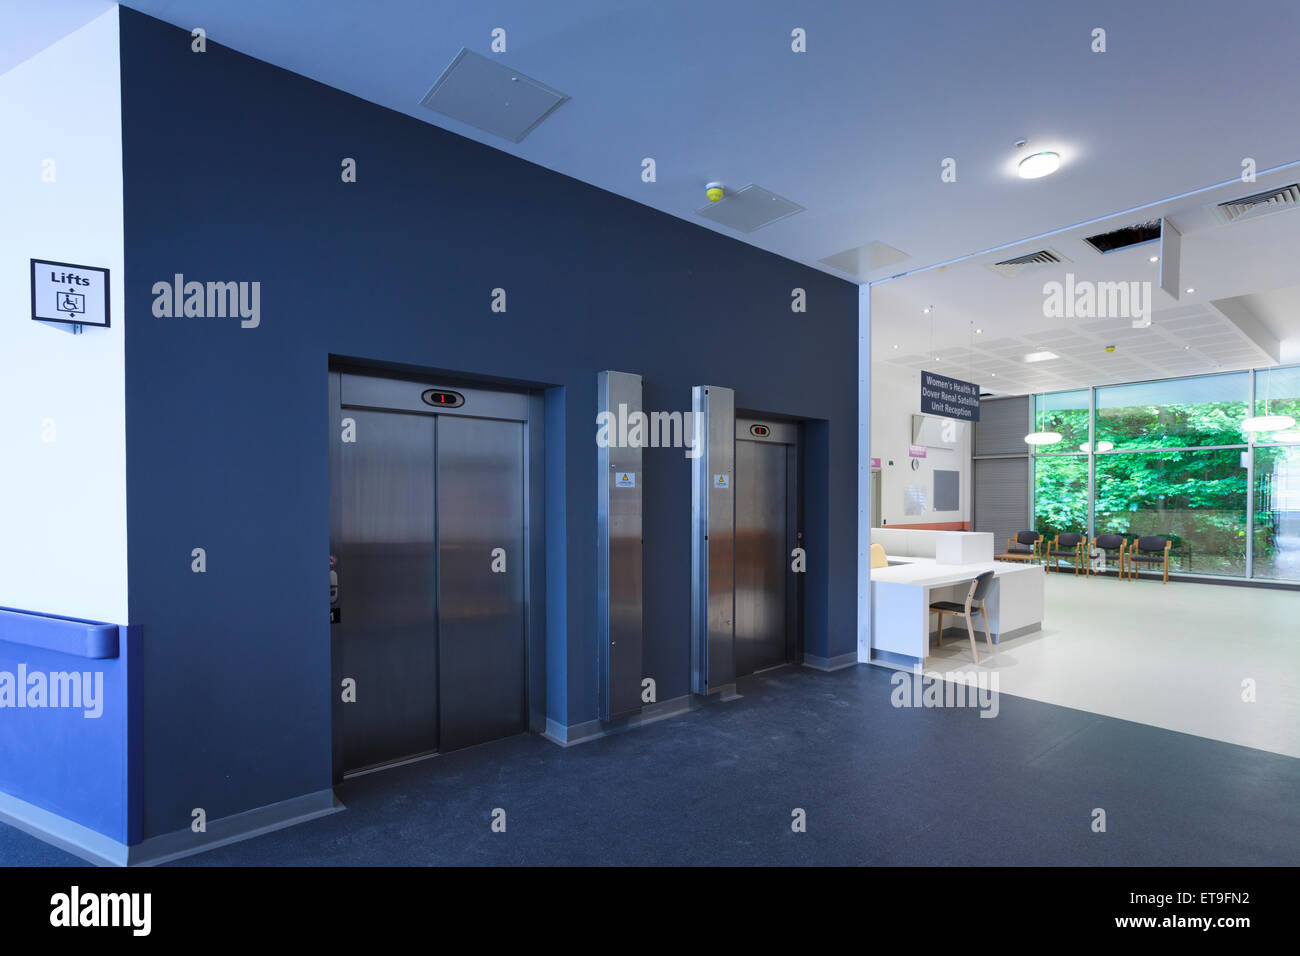 Commercial building two lifts entrance without people Stock Photo